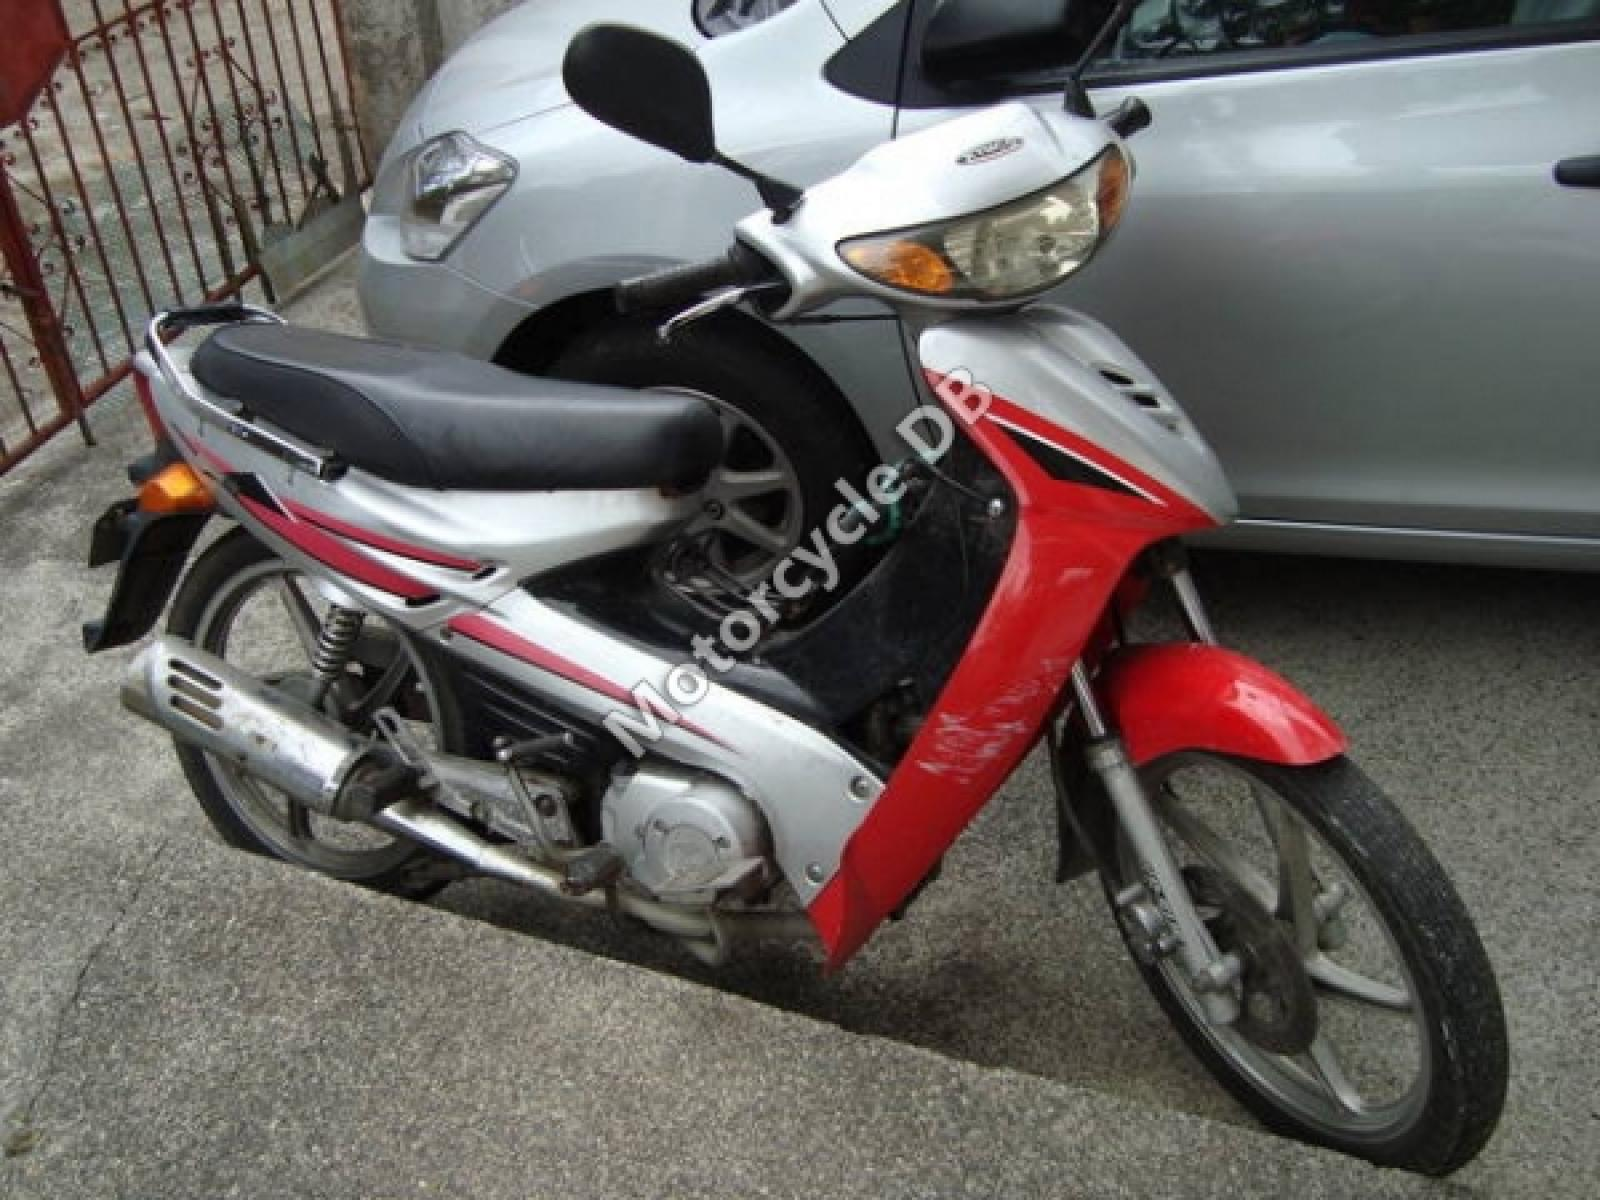 Kymco Yup 50 images #101491